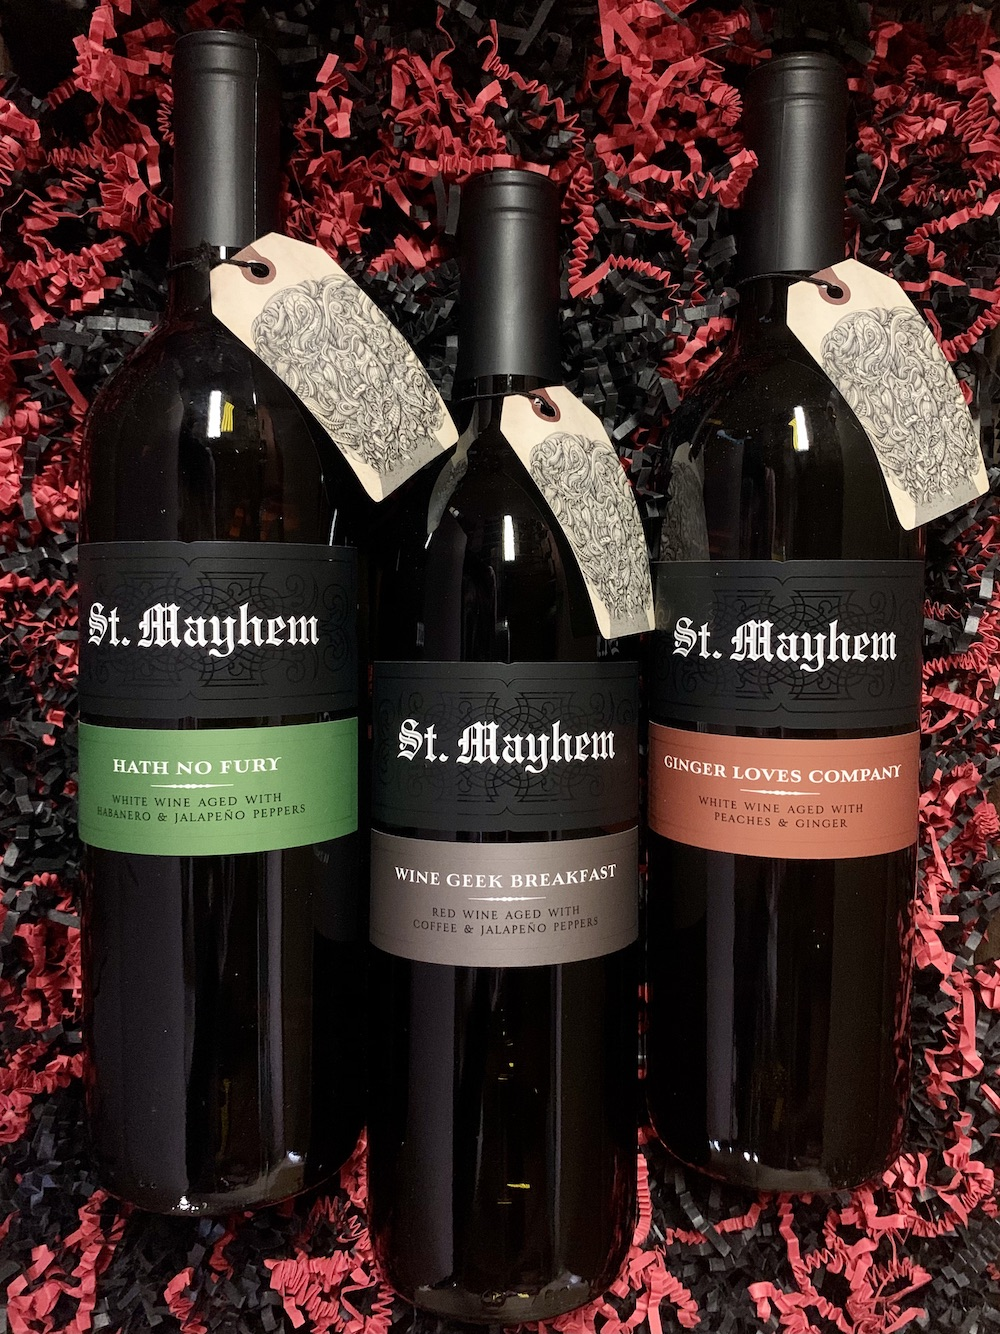 St. Mayhem 3 bottle Pack - Hath No Fury, Wine Geek Breakfast & Ginger Love Company 3x750ml - West Coast Only - Art+Farm Wine